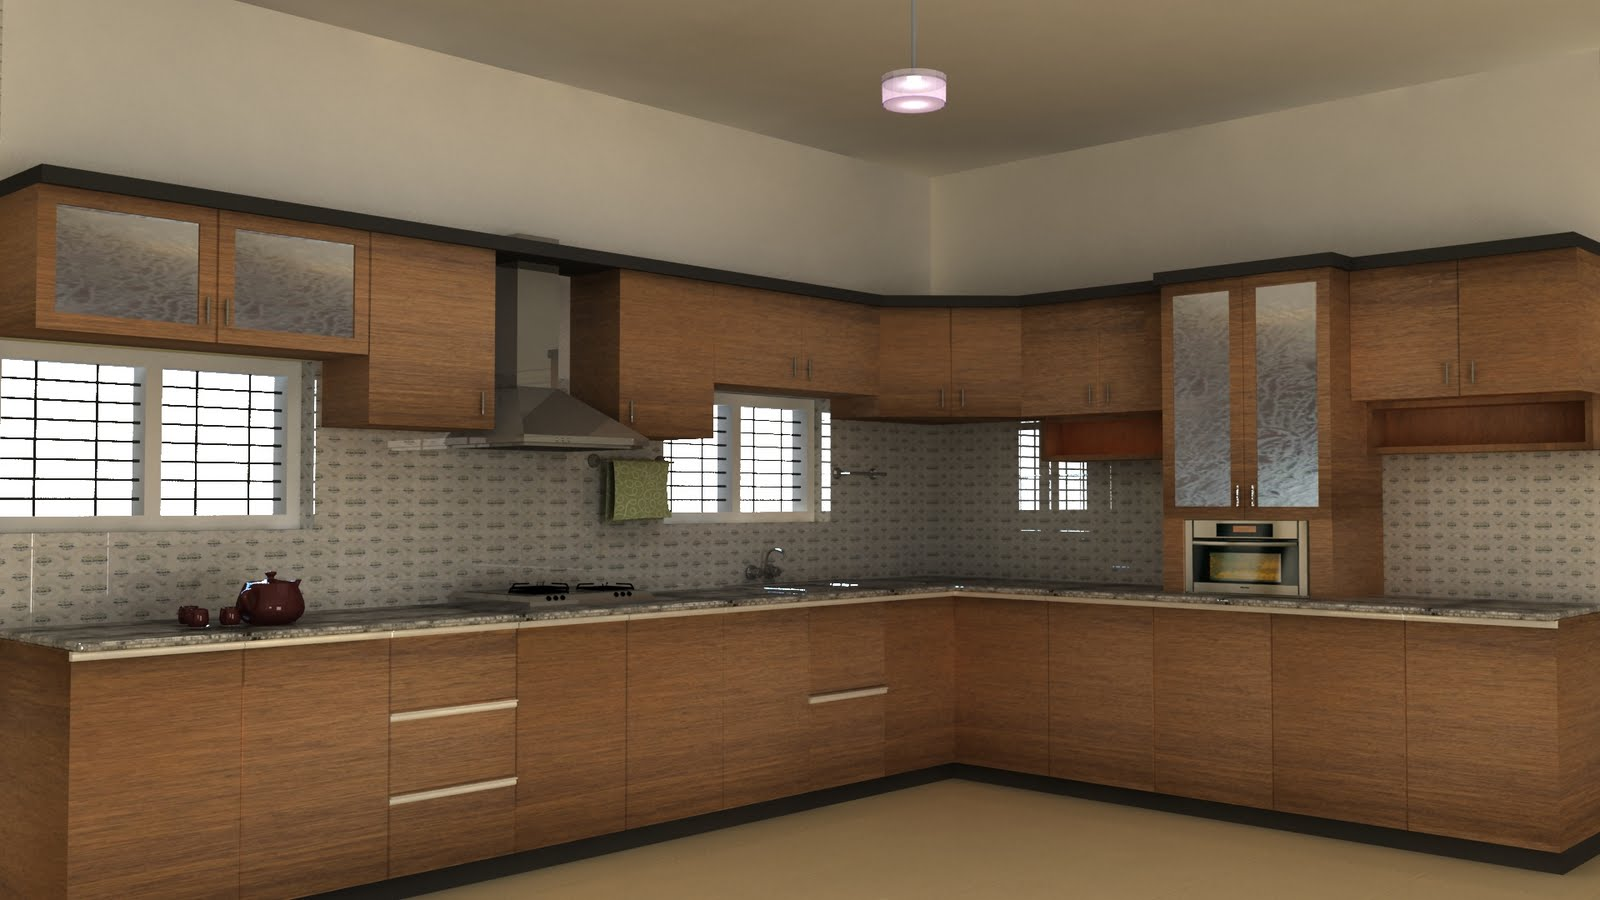 Architectural designing kitchen interiors for Interior design ideas for kitchen